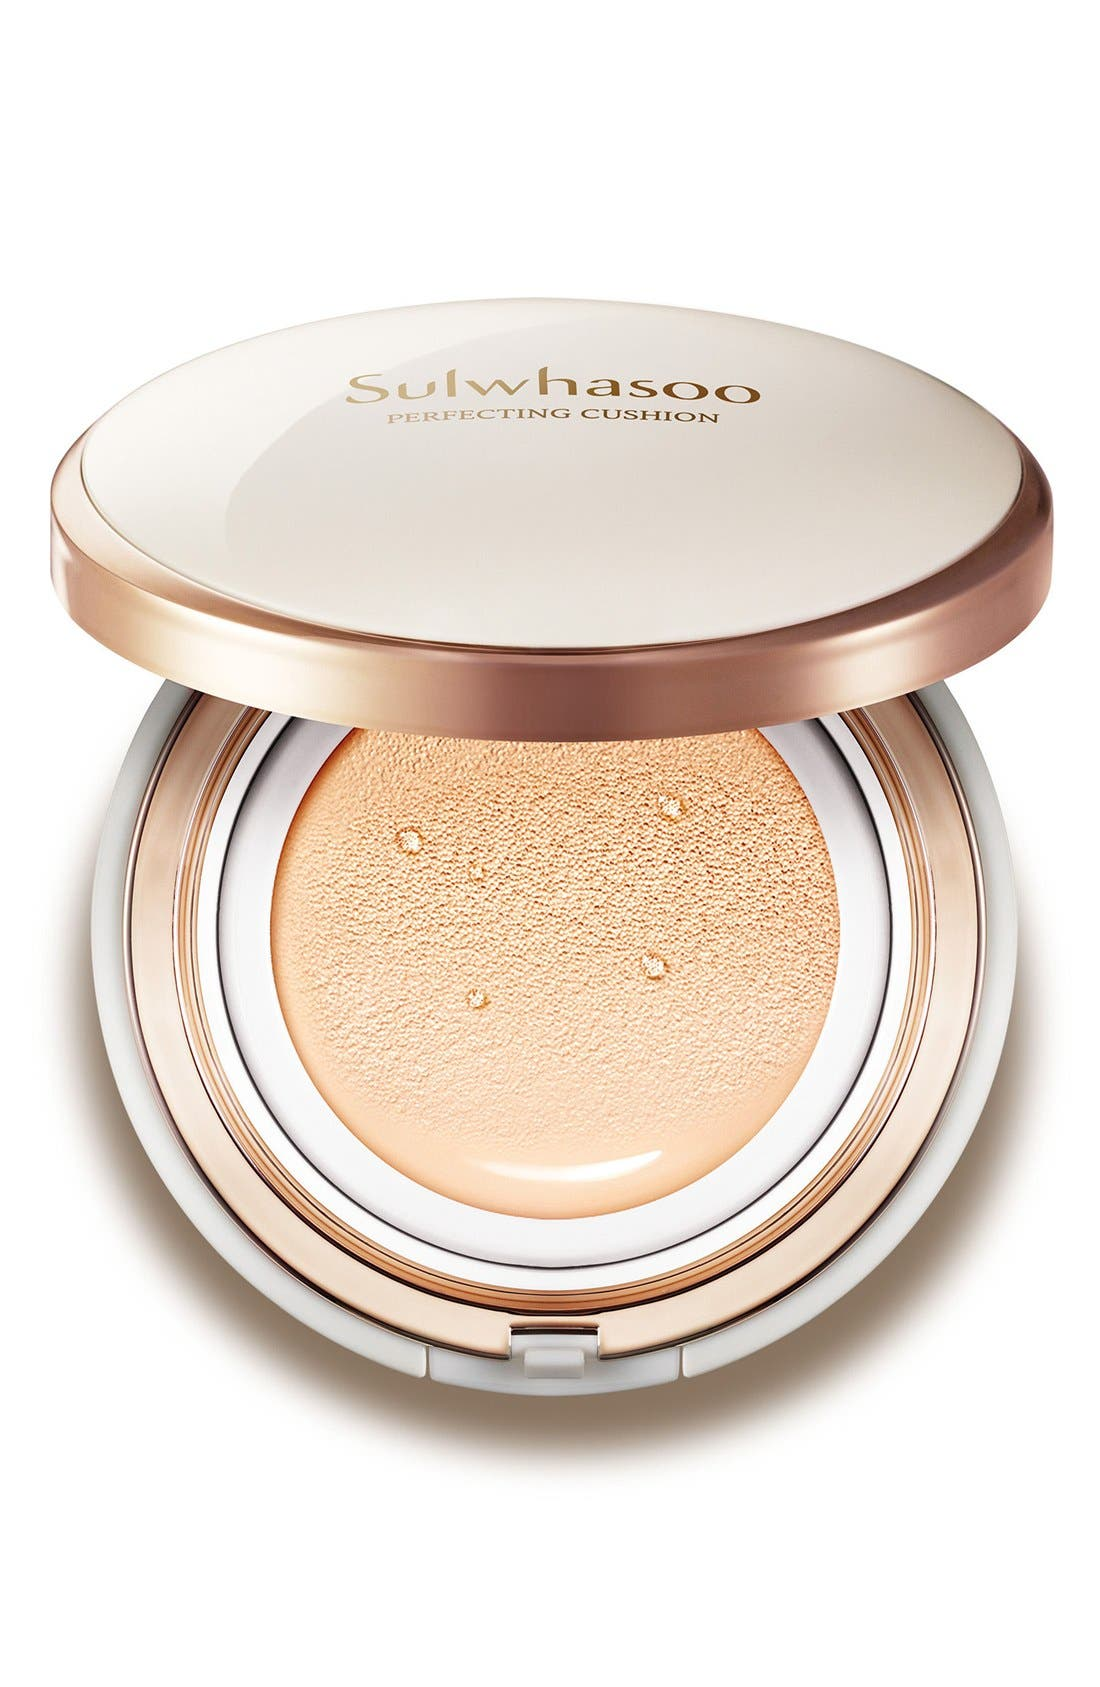 SULWHASOO 'Perfecting Cushion' Foundation Compact, Main, color, 23 MEDIUM BEIGE